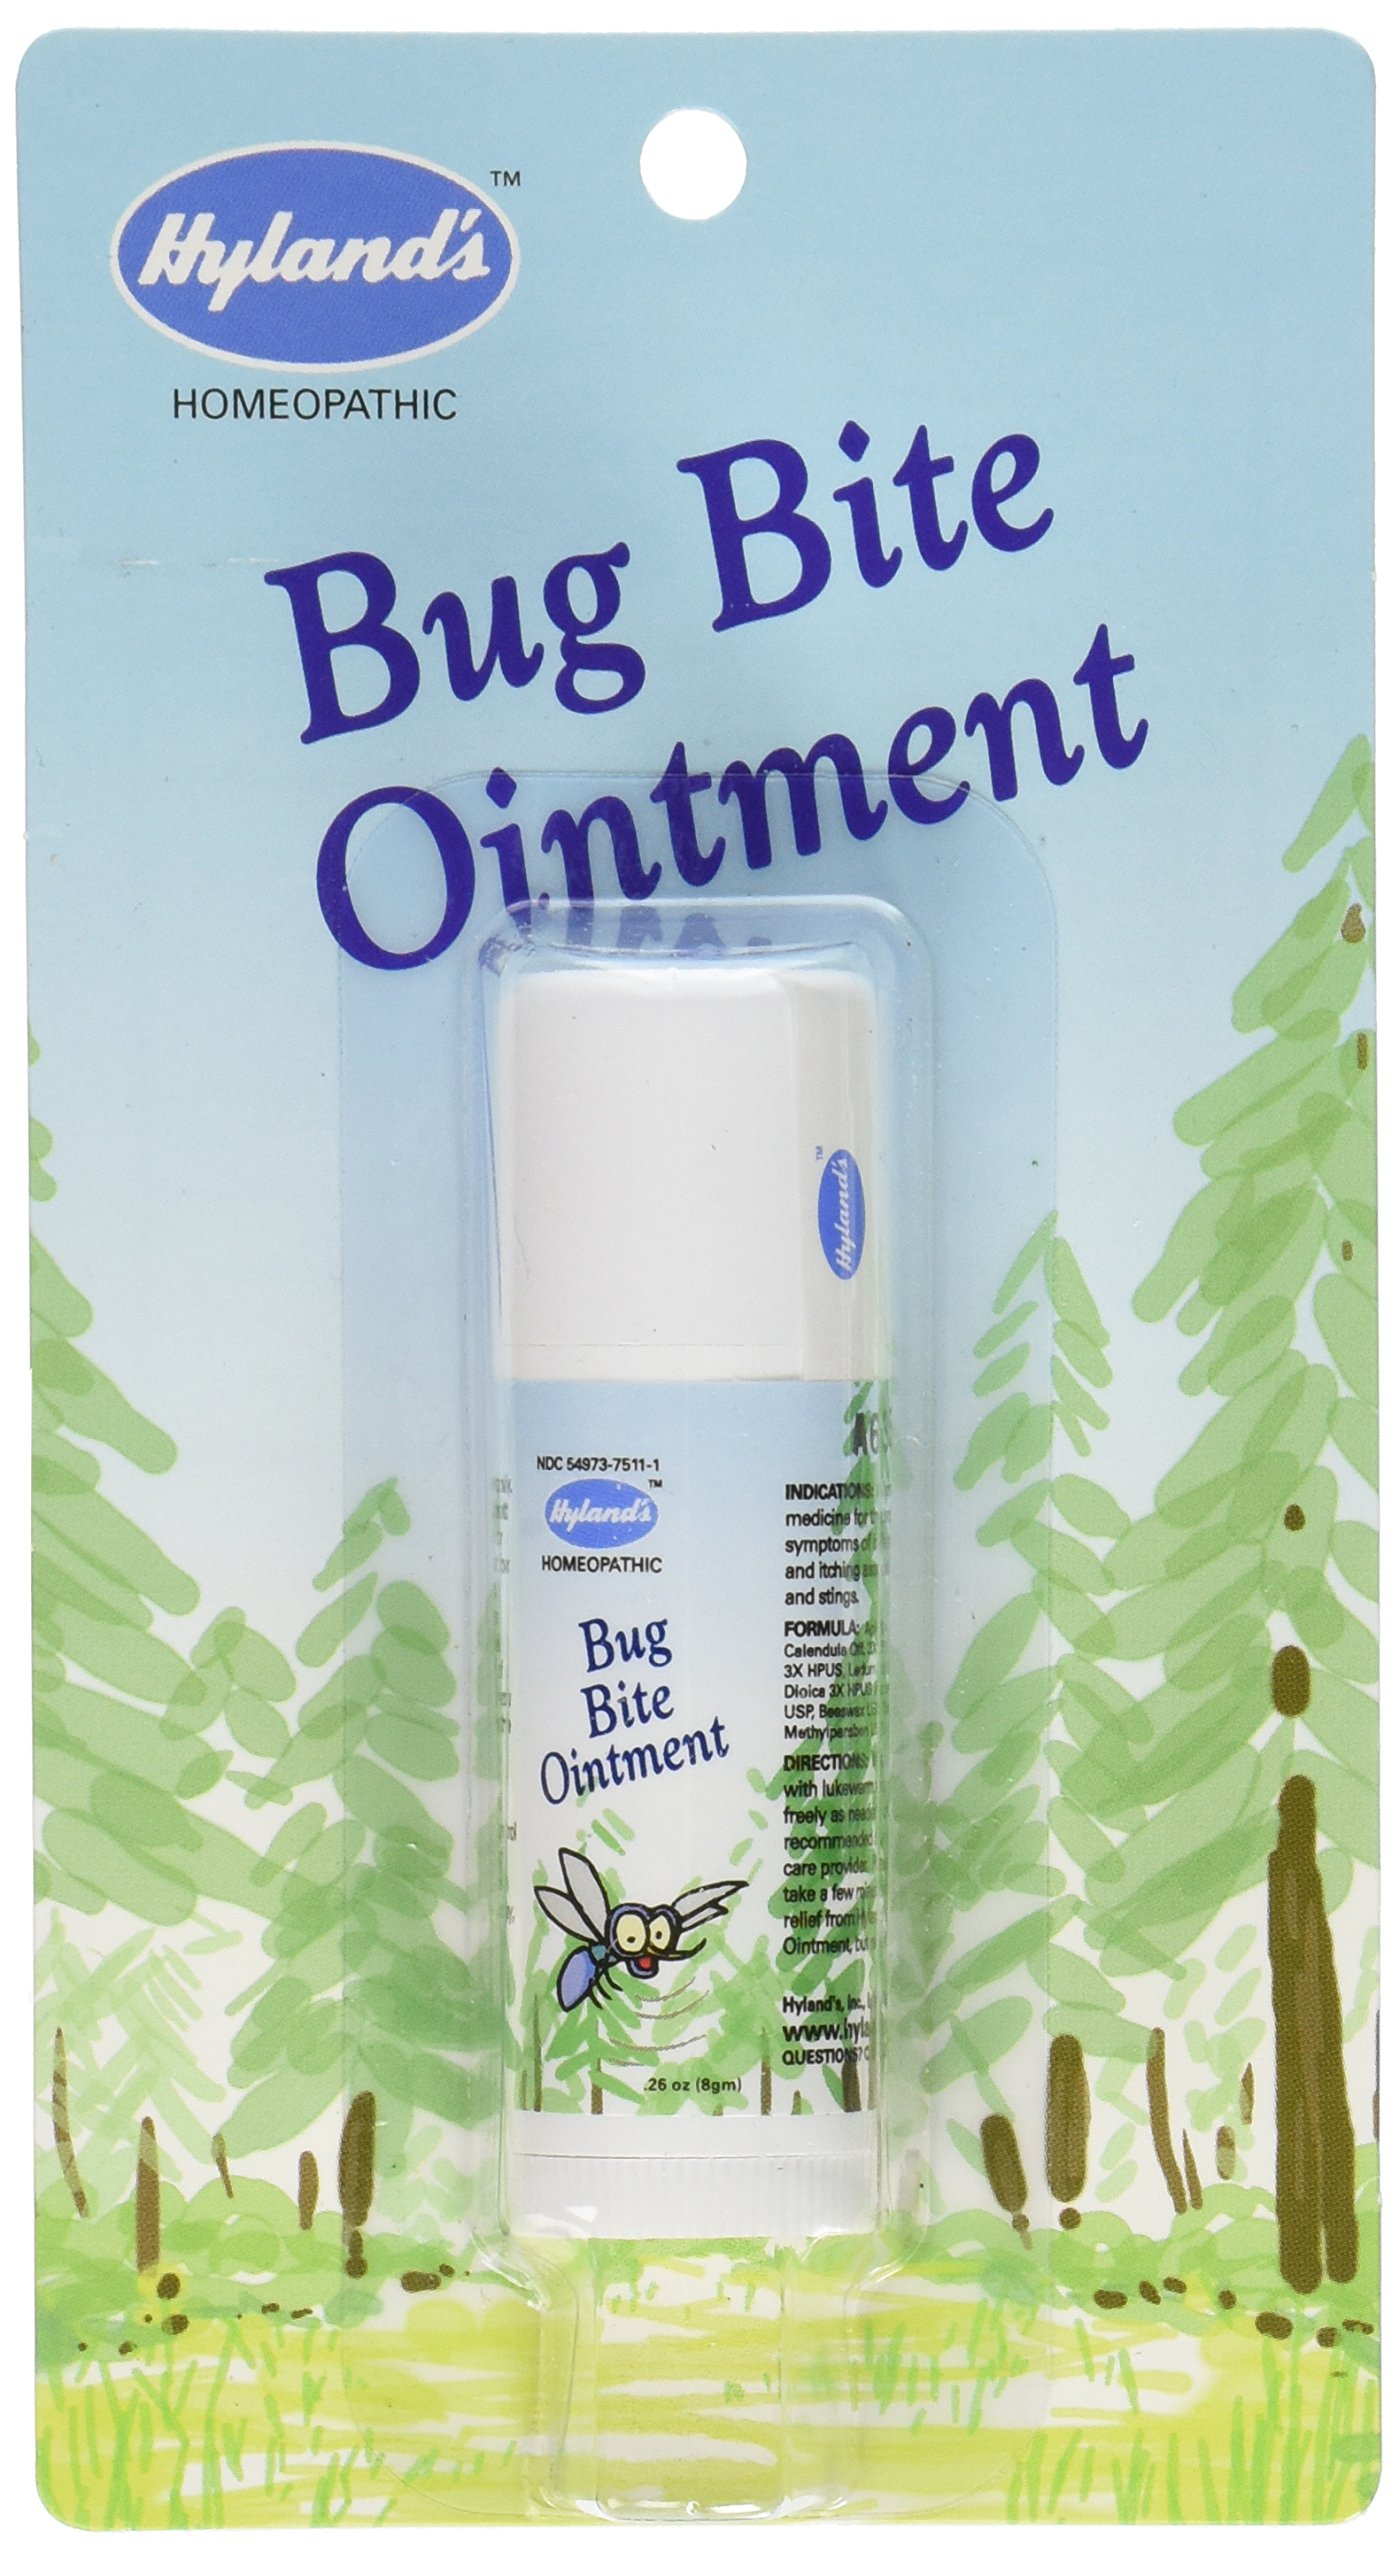 Natural Bug Bite Itch Relief by Hyland's, Fast Acting Bug Bite Ointment, Relieves Swelling and Itching from Bug Bites, 0.26oz Stick by Hyland's Homeopathic